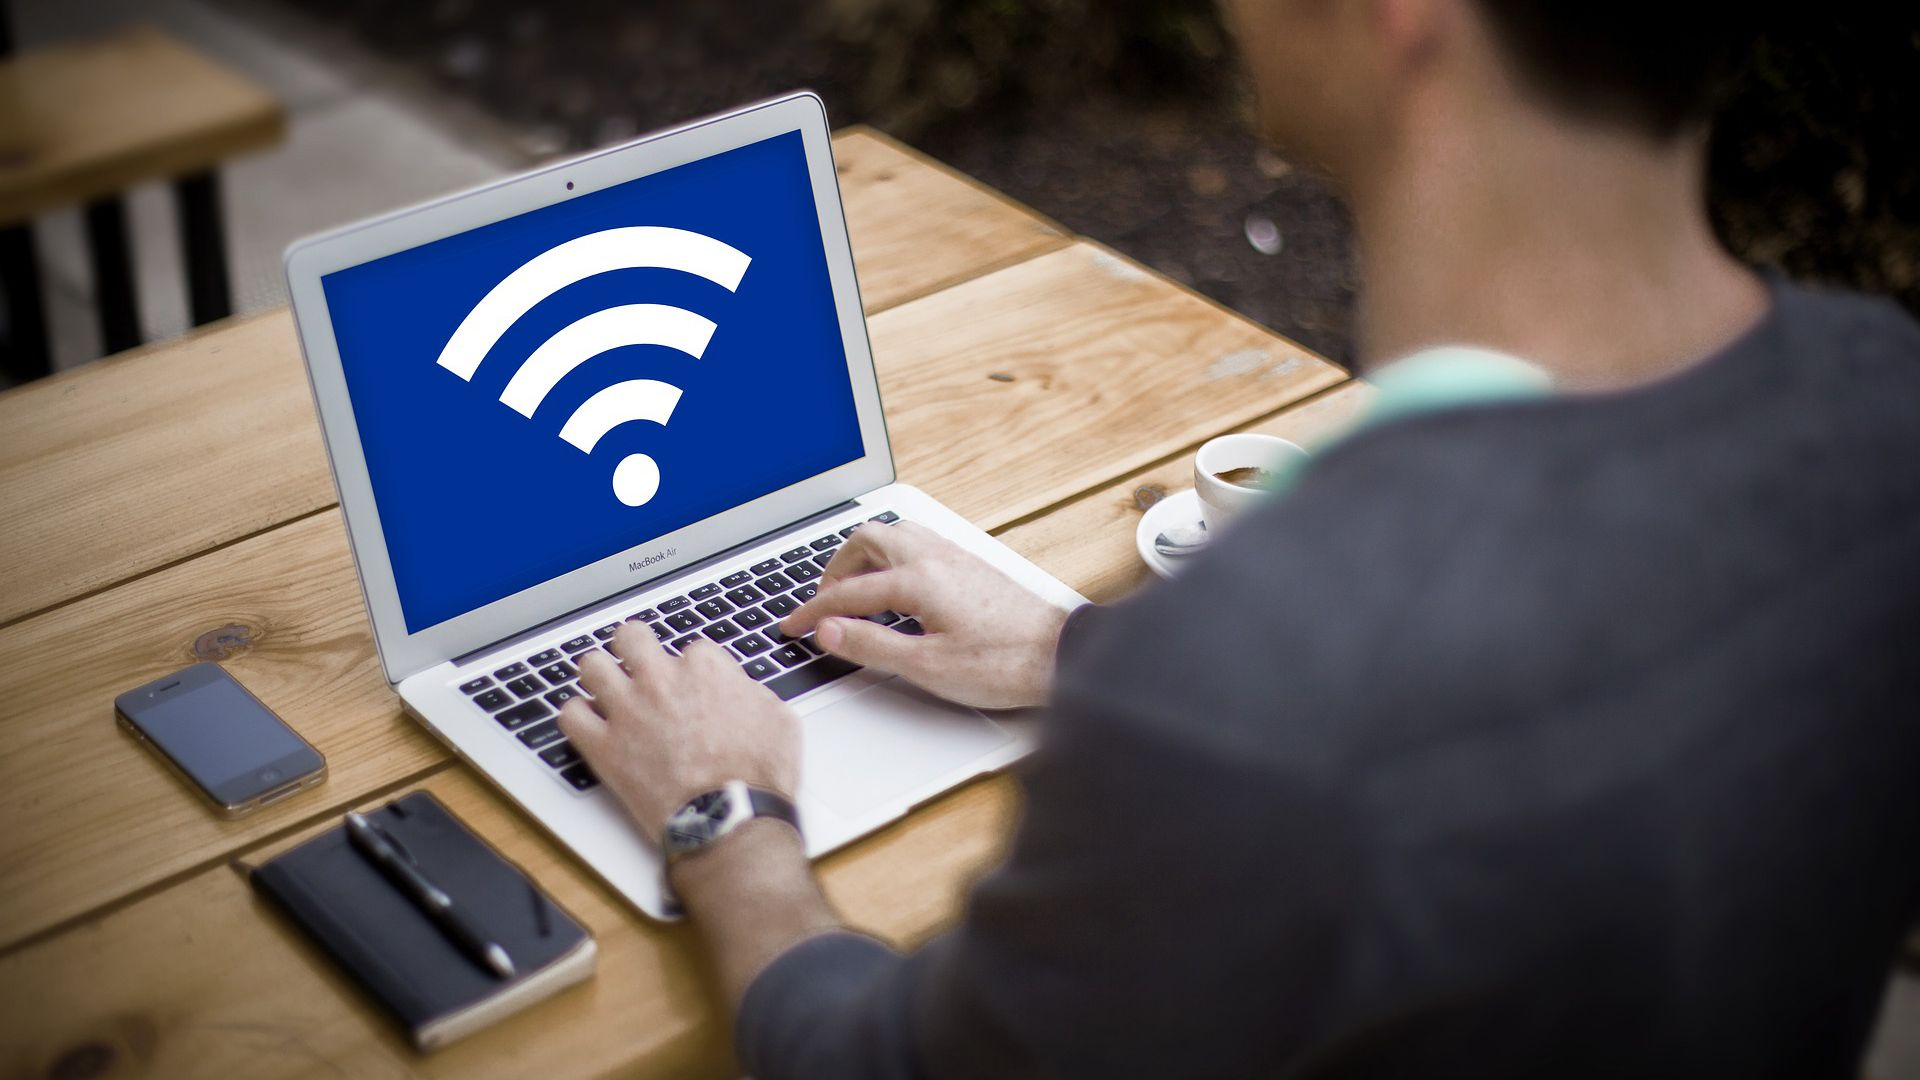 WiFi Network Not Showing Up on Computer: Correct methods of updating 2021